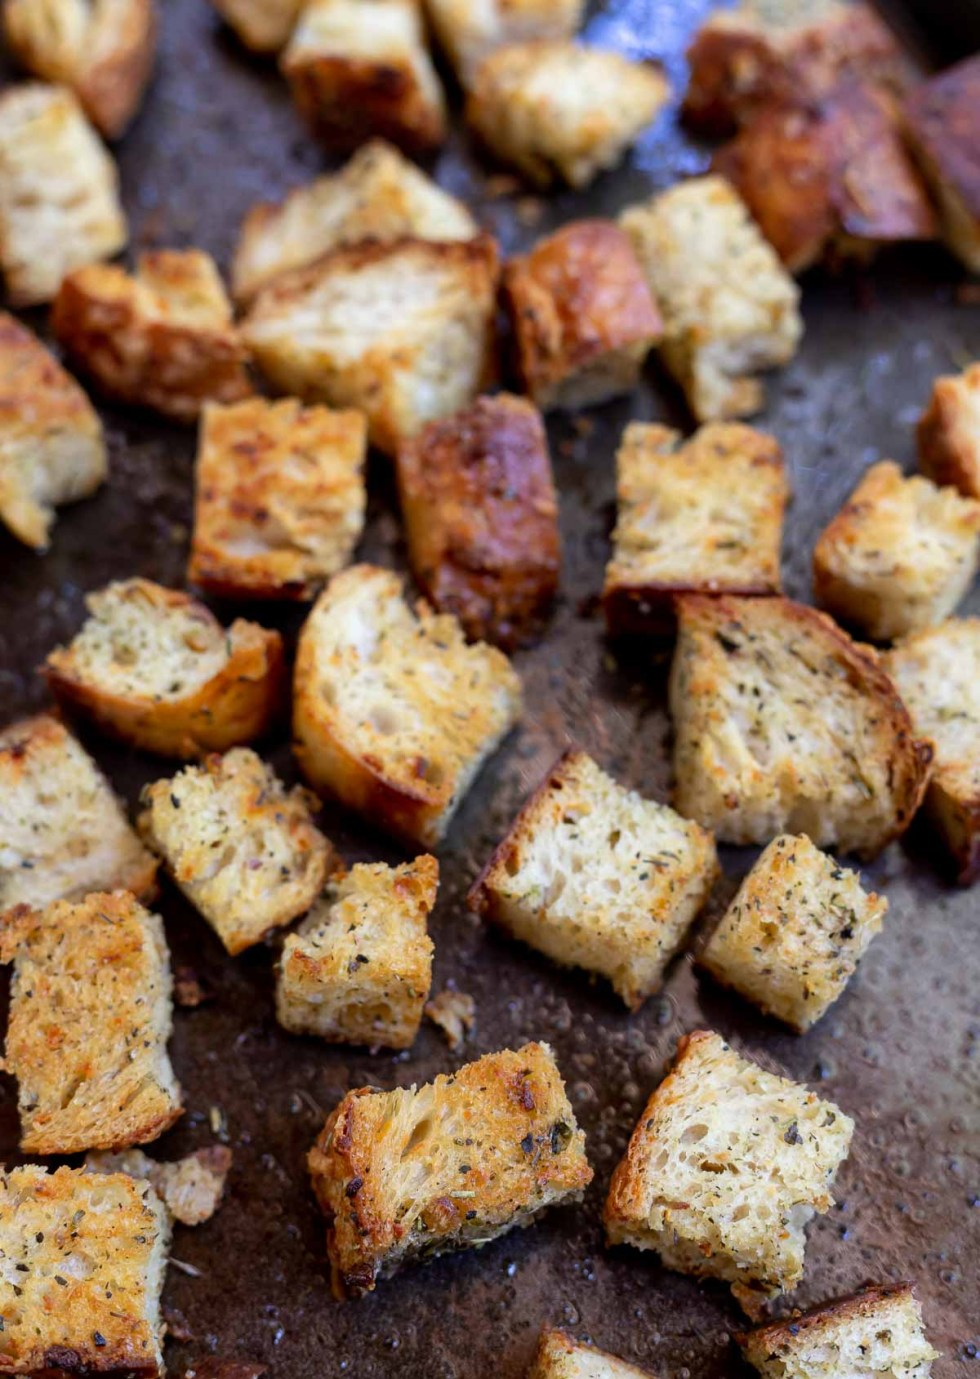 baked croutons on dark rimmed baking sheet